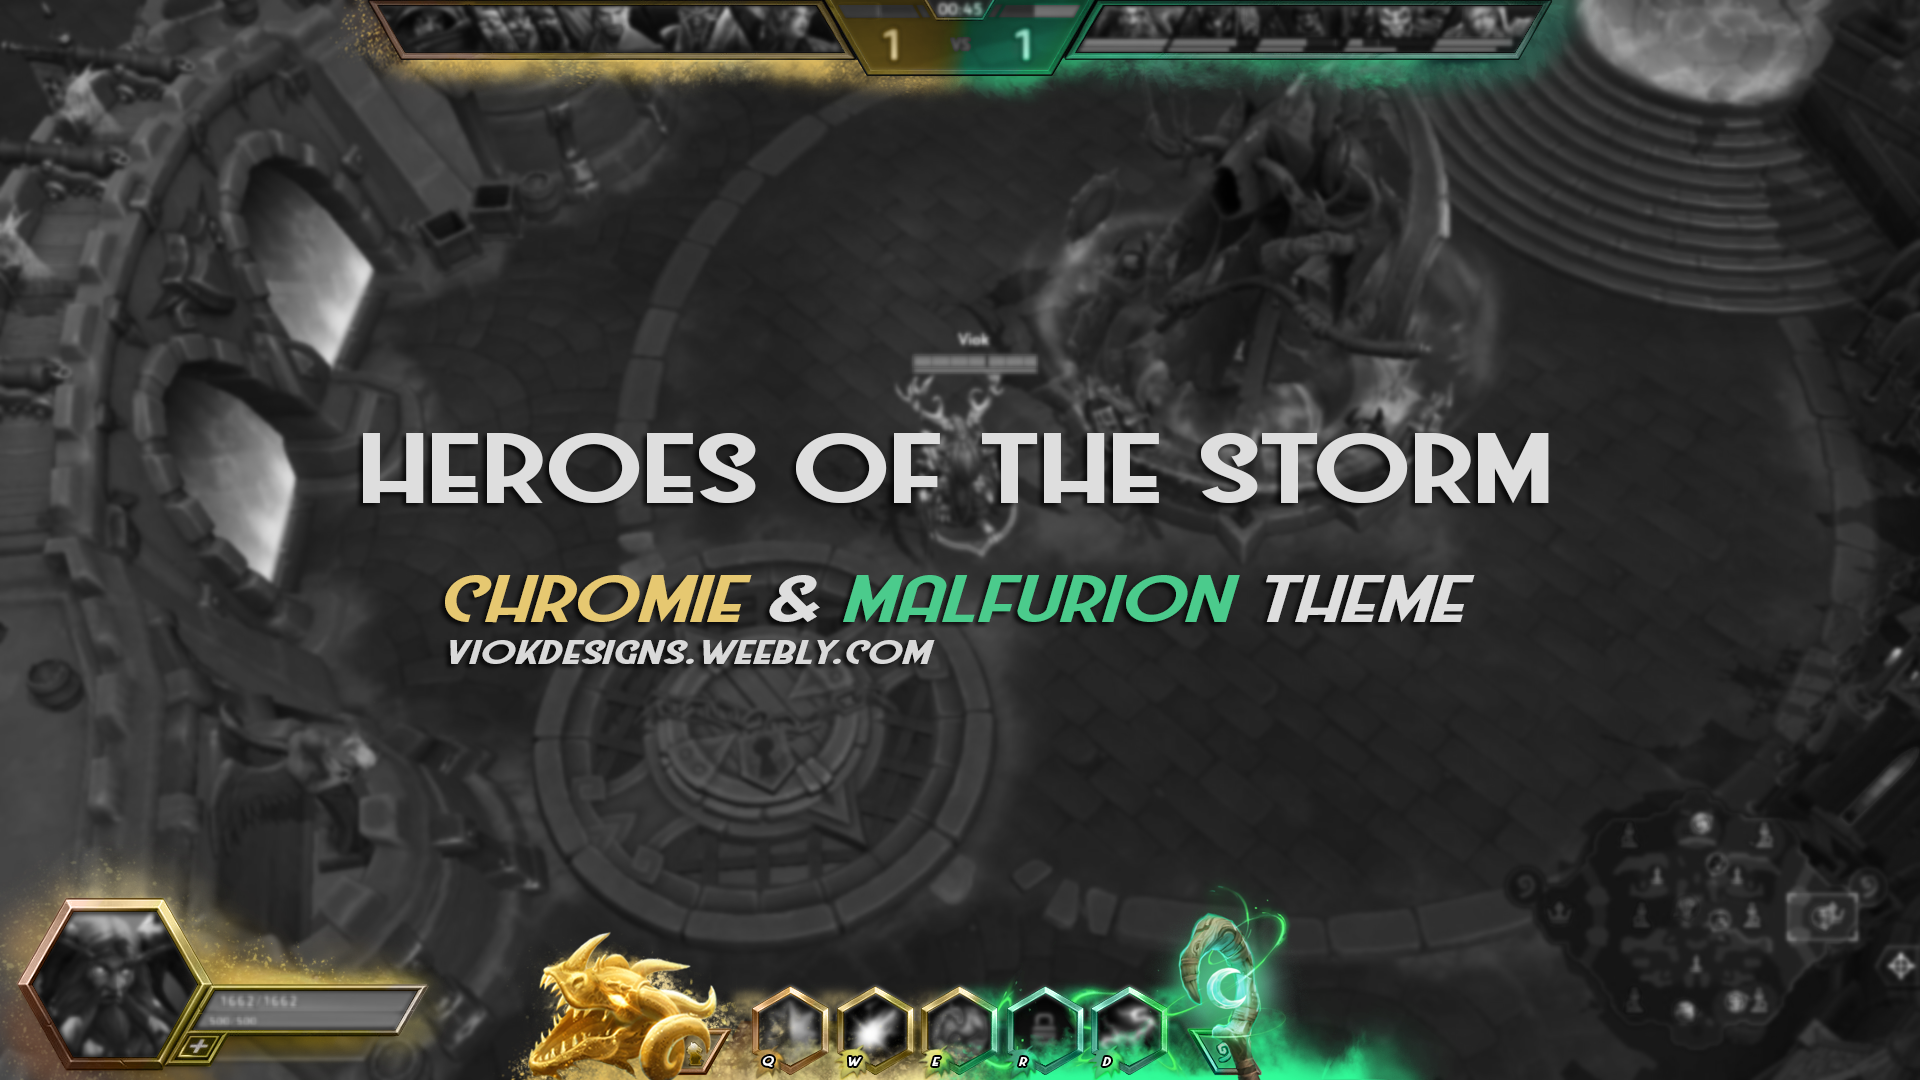 Heroes Of The Storm Overlay Chromie N Malfurion By Vioklive On Deviantart Heroes of the storm map objectives & statistics | hots logs. deviantart